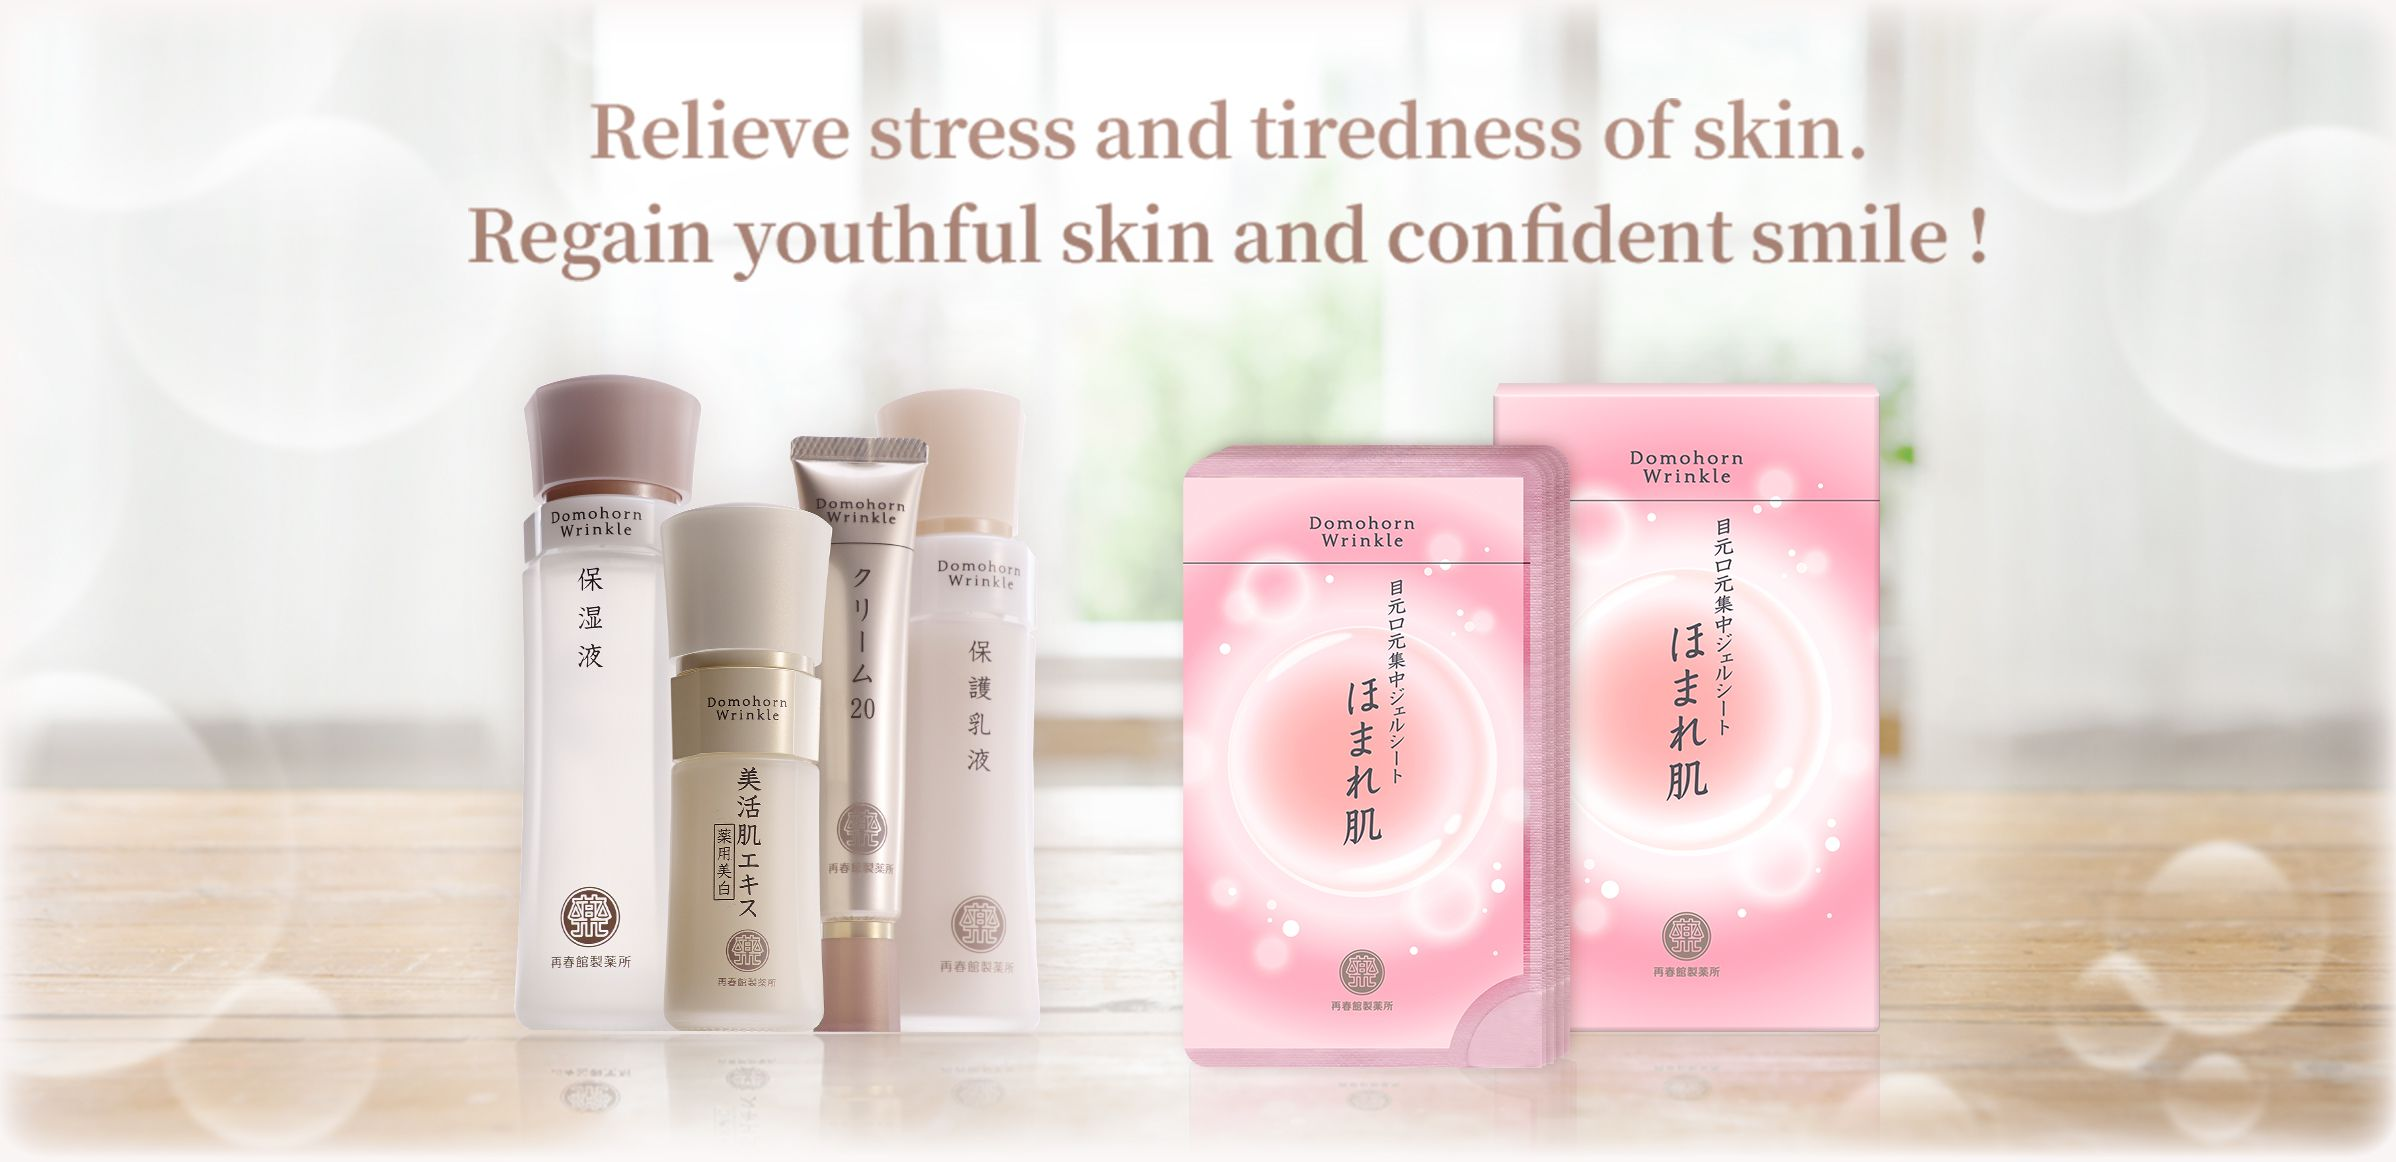 Relieve stress and tiredness of skin. Regain youthful skin and confident smile !